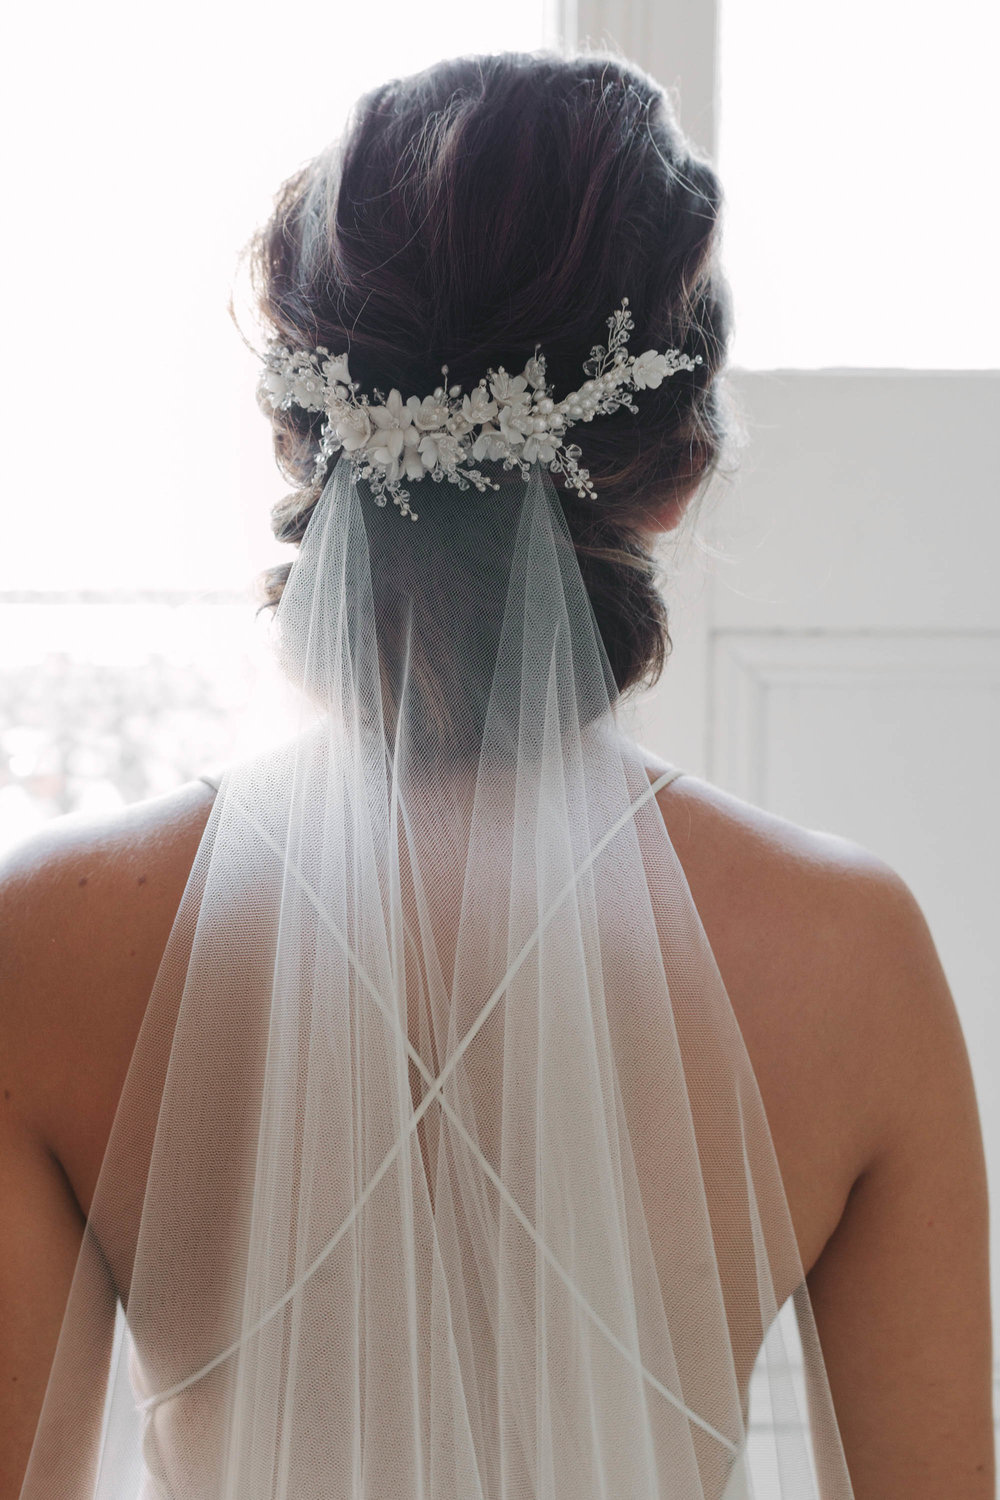 Tania Maras Bridal Headpieces at Love Find Co